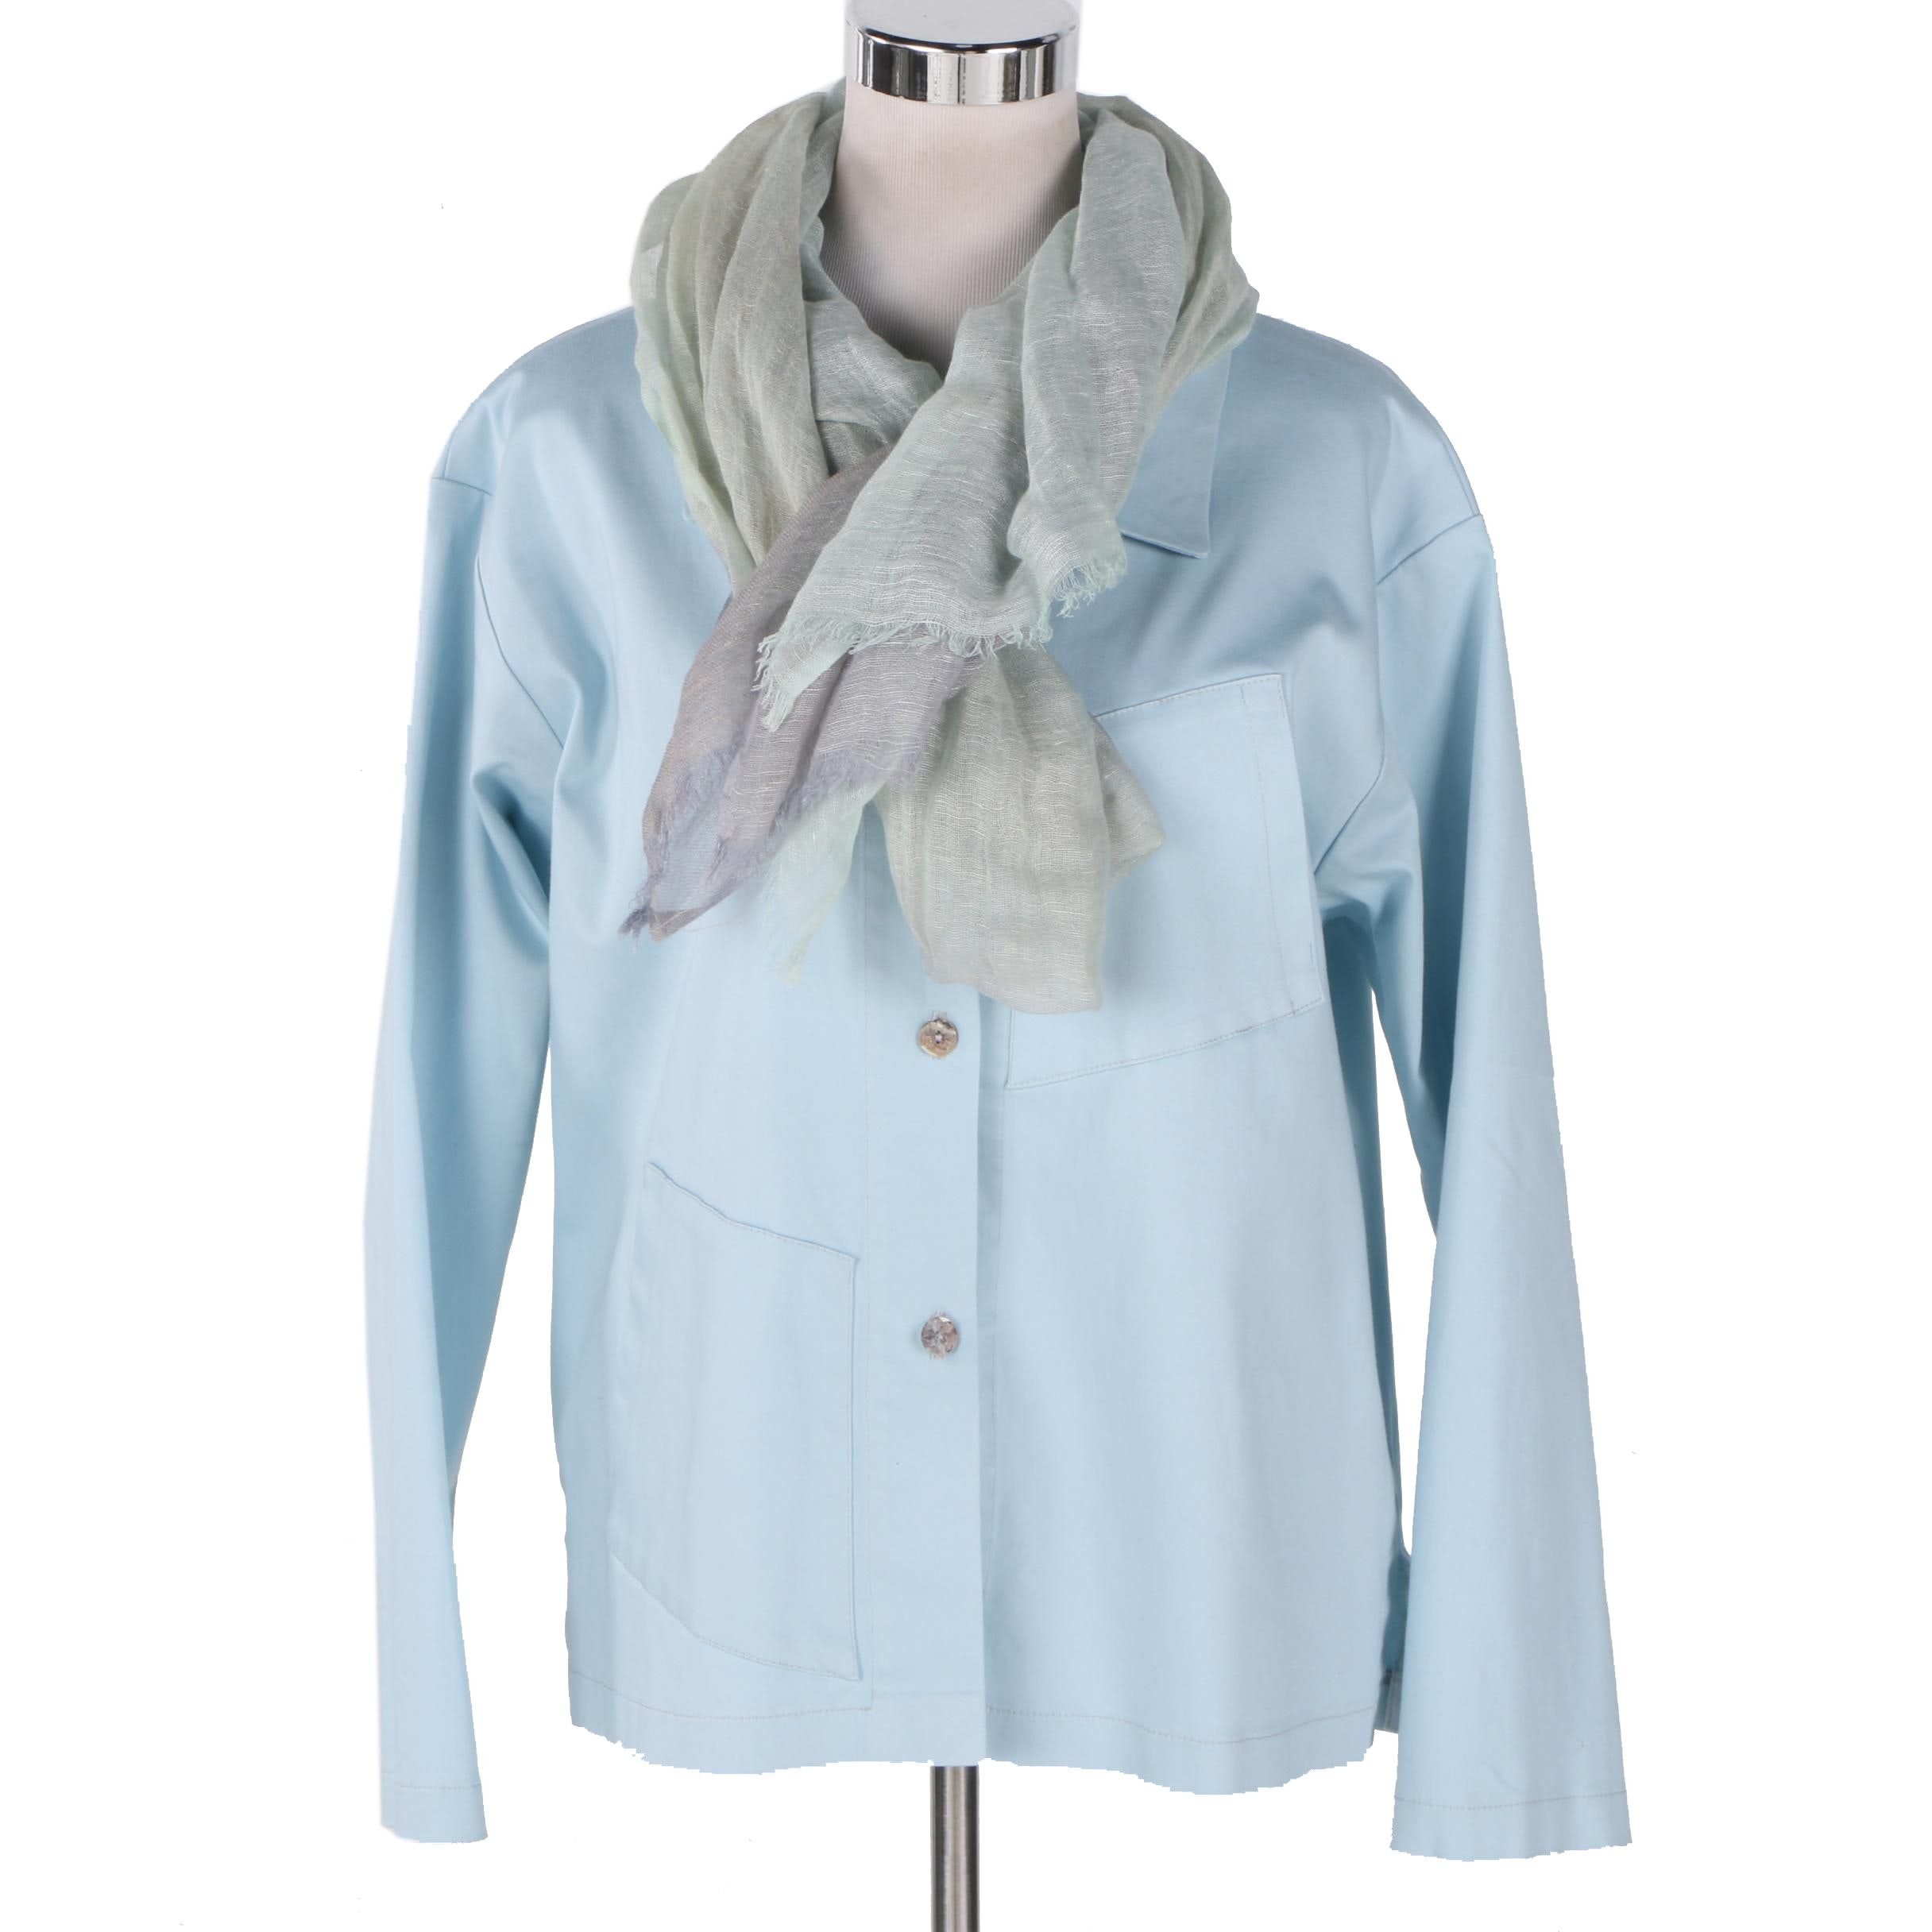 Women's Jacket by Vitamin with Scarf